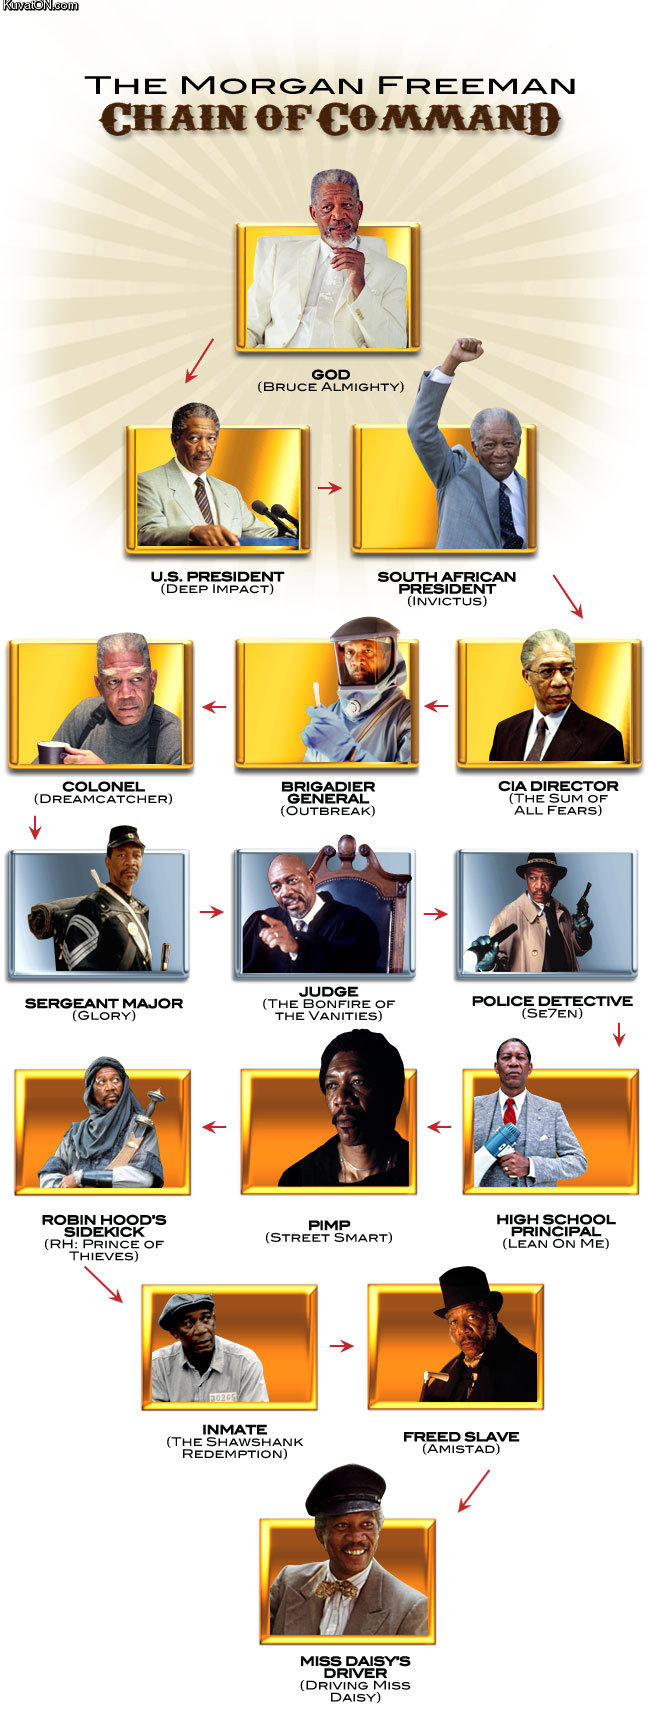 The Morgan Freeman Chain of Command. thumbs up or down please!<br /> and its prob a repost. THE FREEMAN LLB. PRESIDENT ' AFRICAN in EEP IMPACT} FREEAGENT